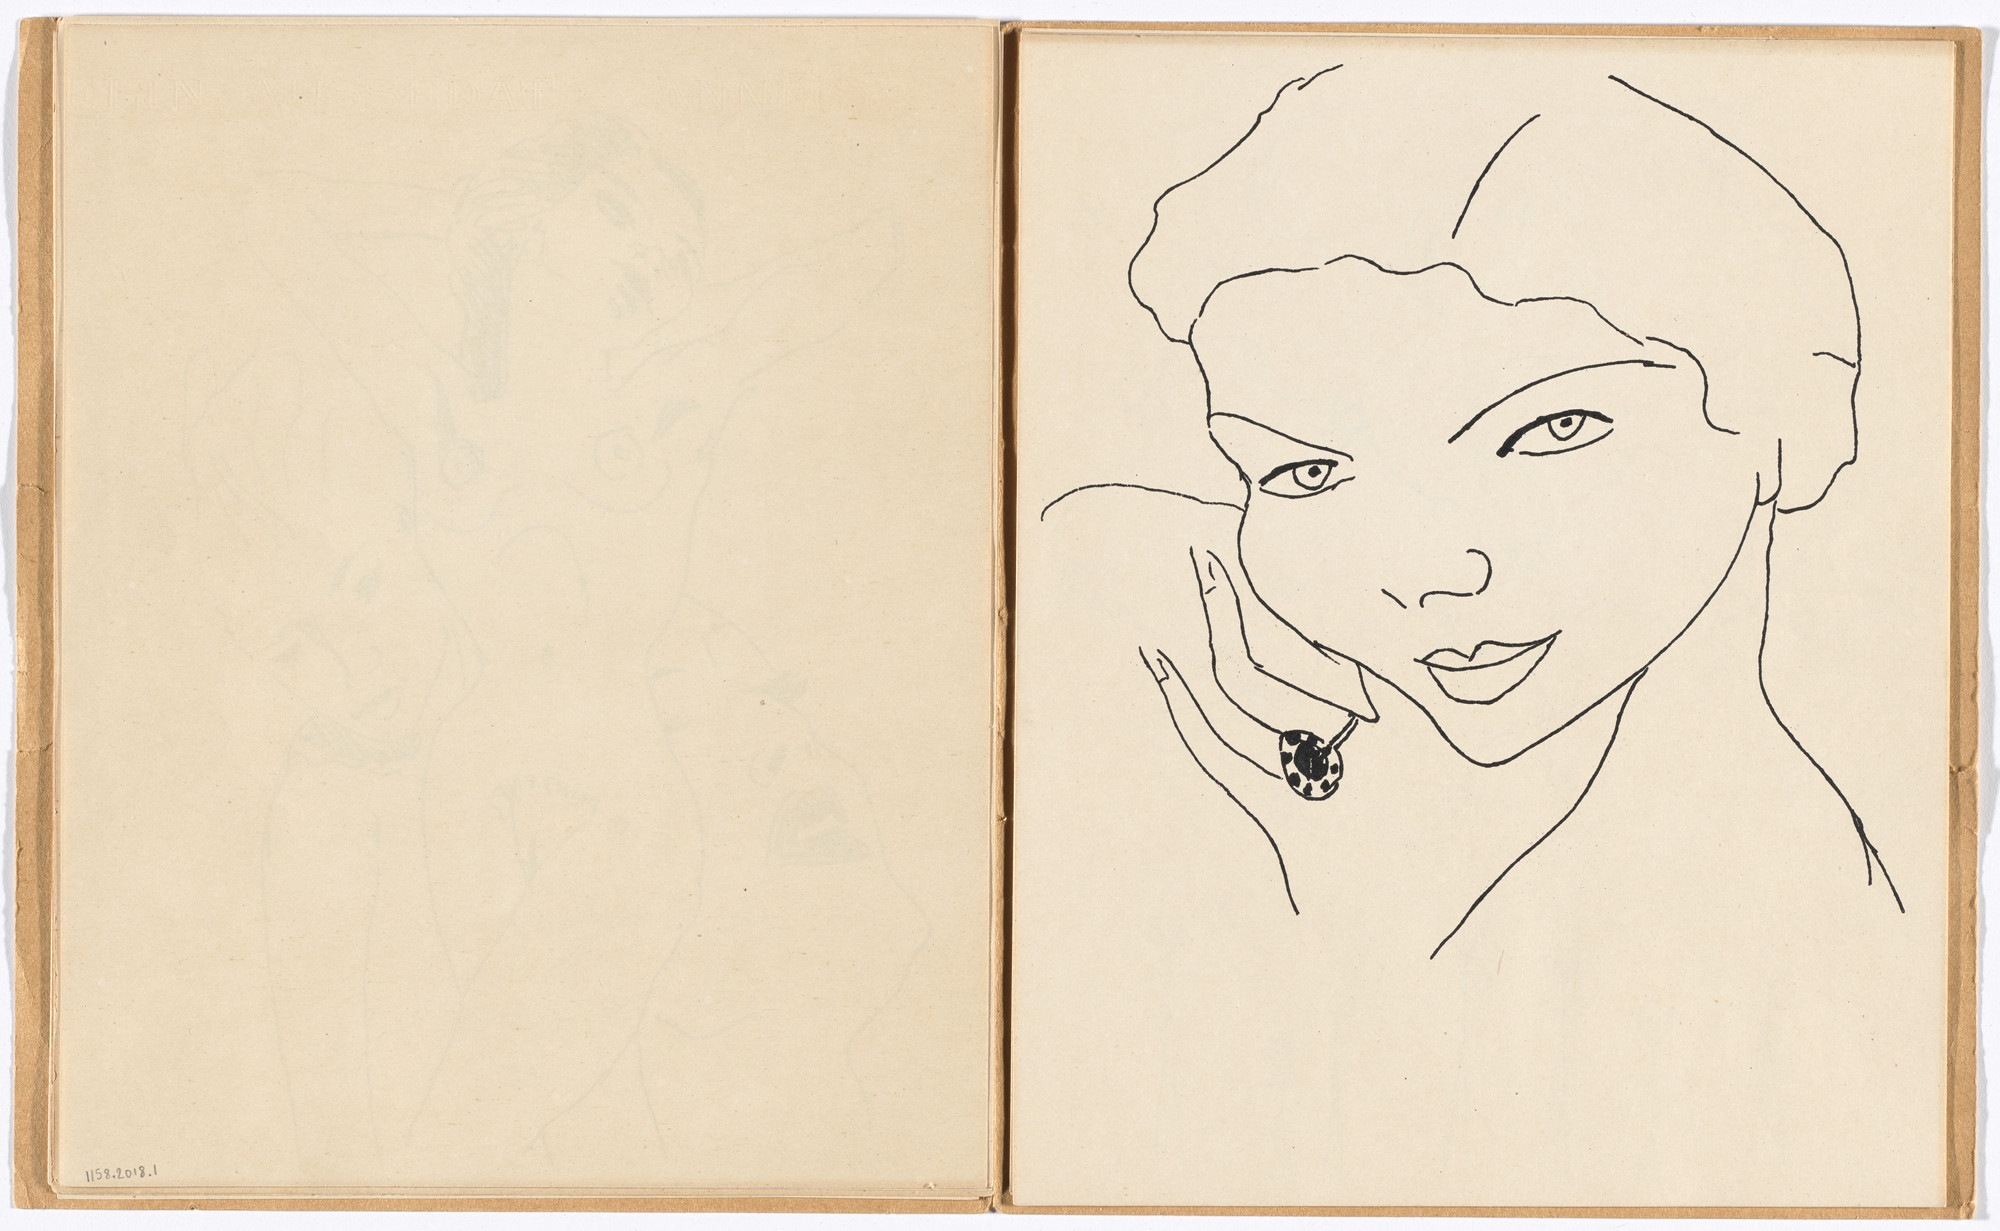 Francis Picabia. Plate (folio 9) from 591. 1952